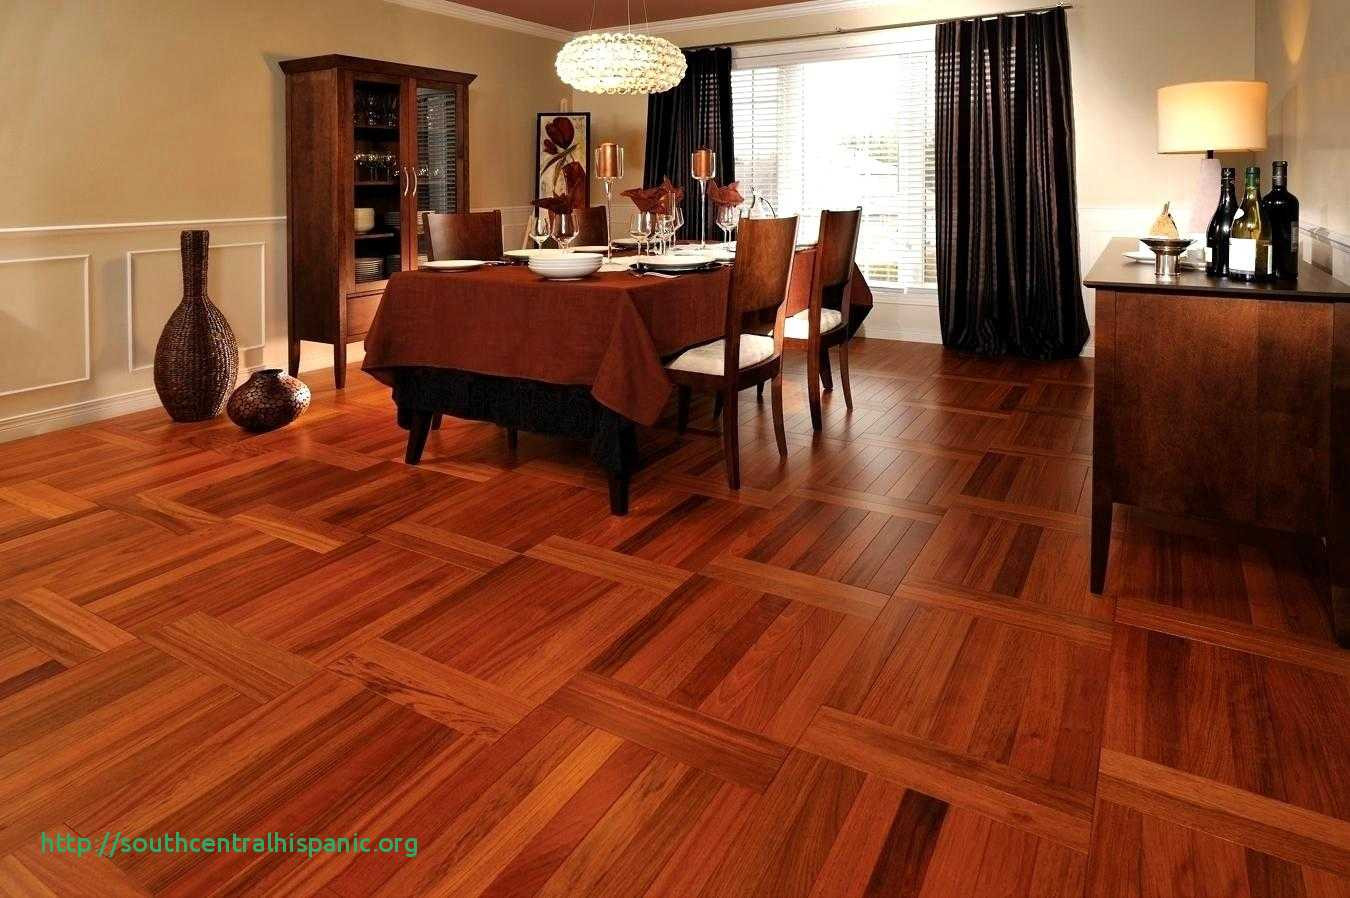 bruce hardwood floor cleaner reviews of kitchen flooring bruce hardwood kuxniya with bruce hardwood flooring company meilleur de breathtaking kitchen design bruce hardwood floors ideas ty